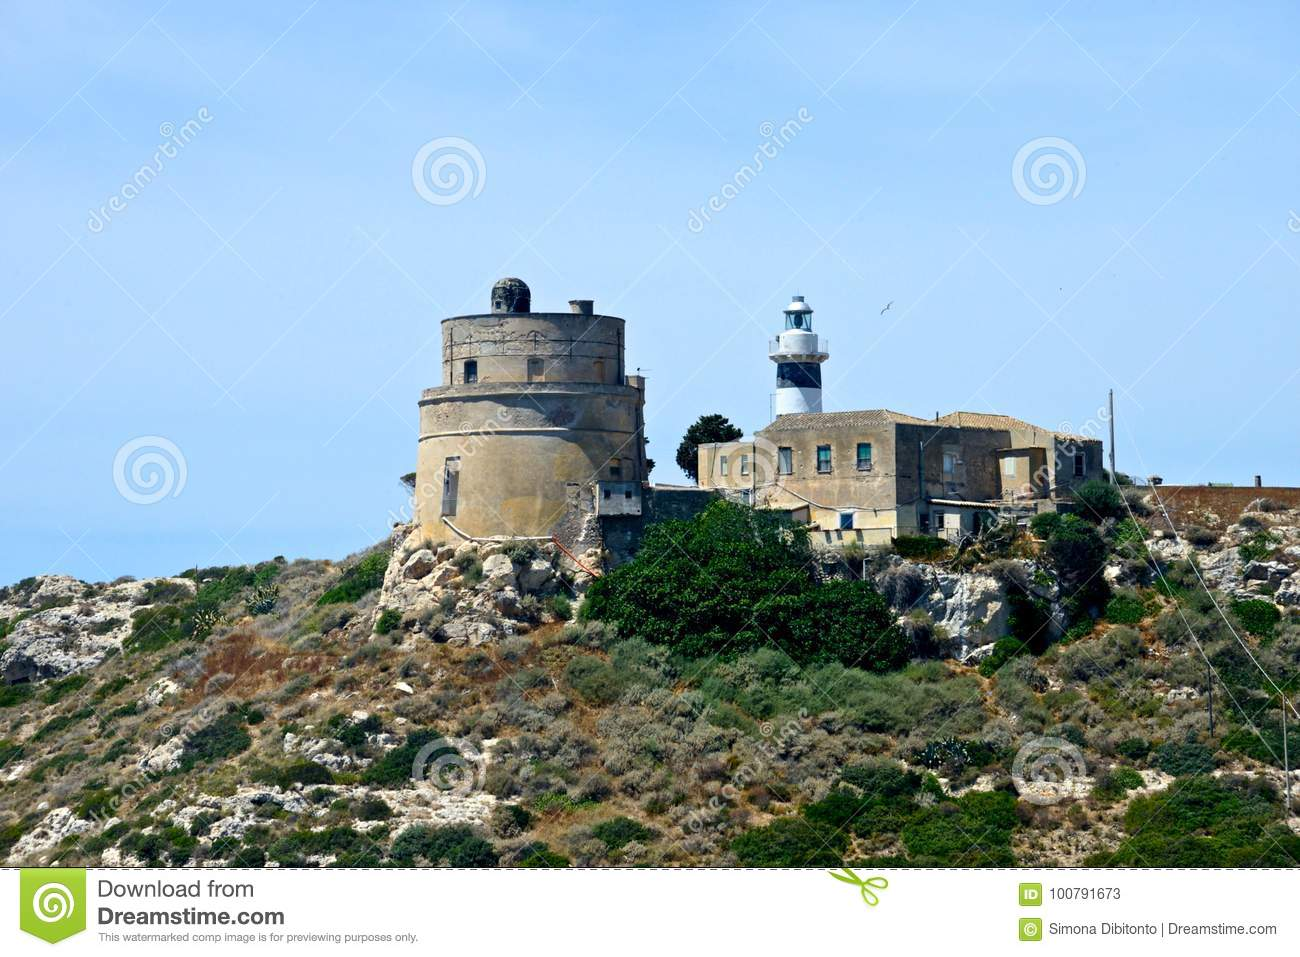 Promontory Of Calamosca With Lighthouse Stock Image - Image of ...